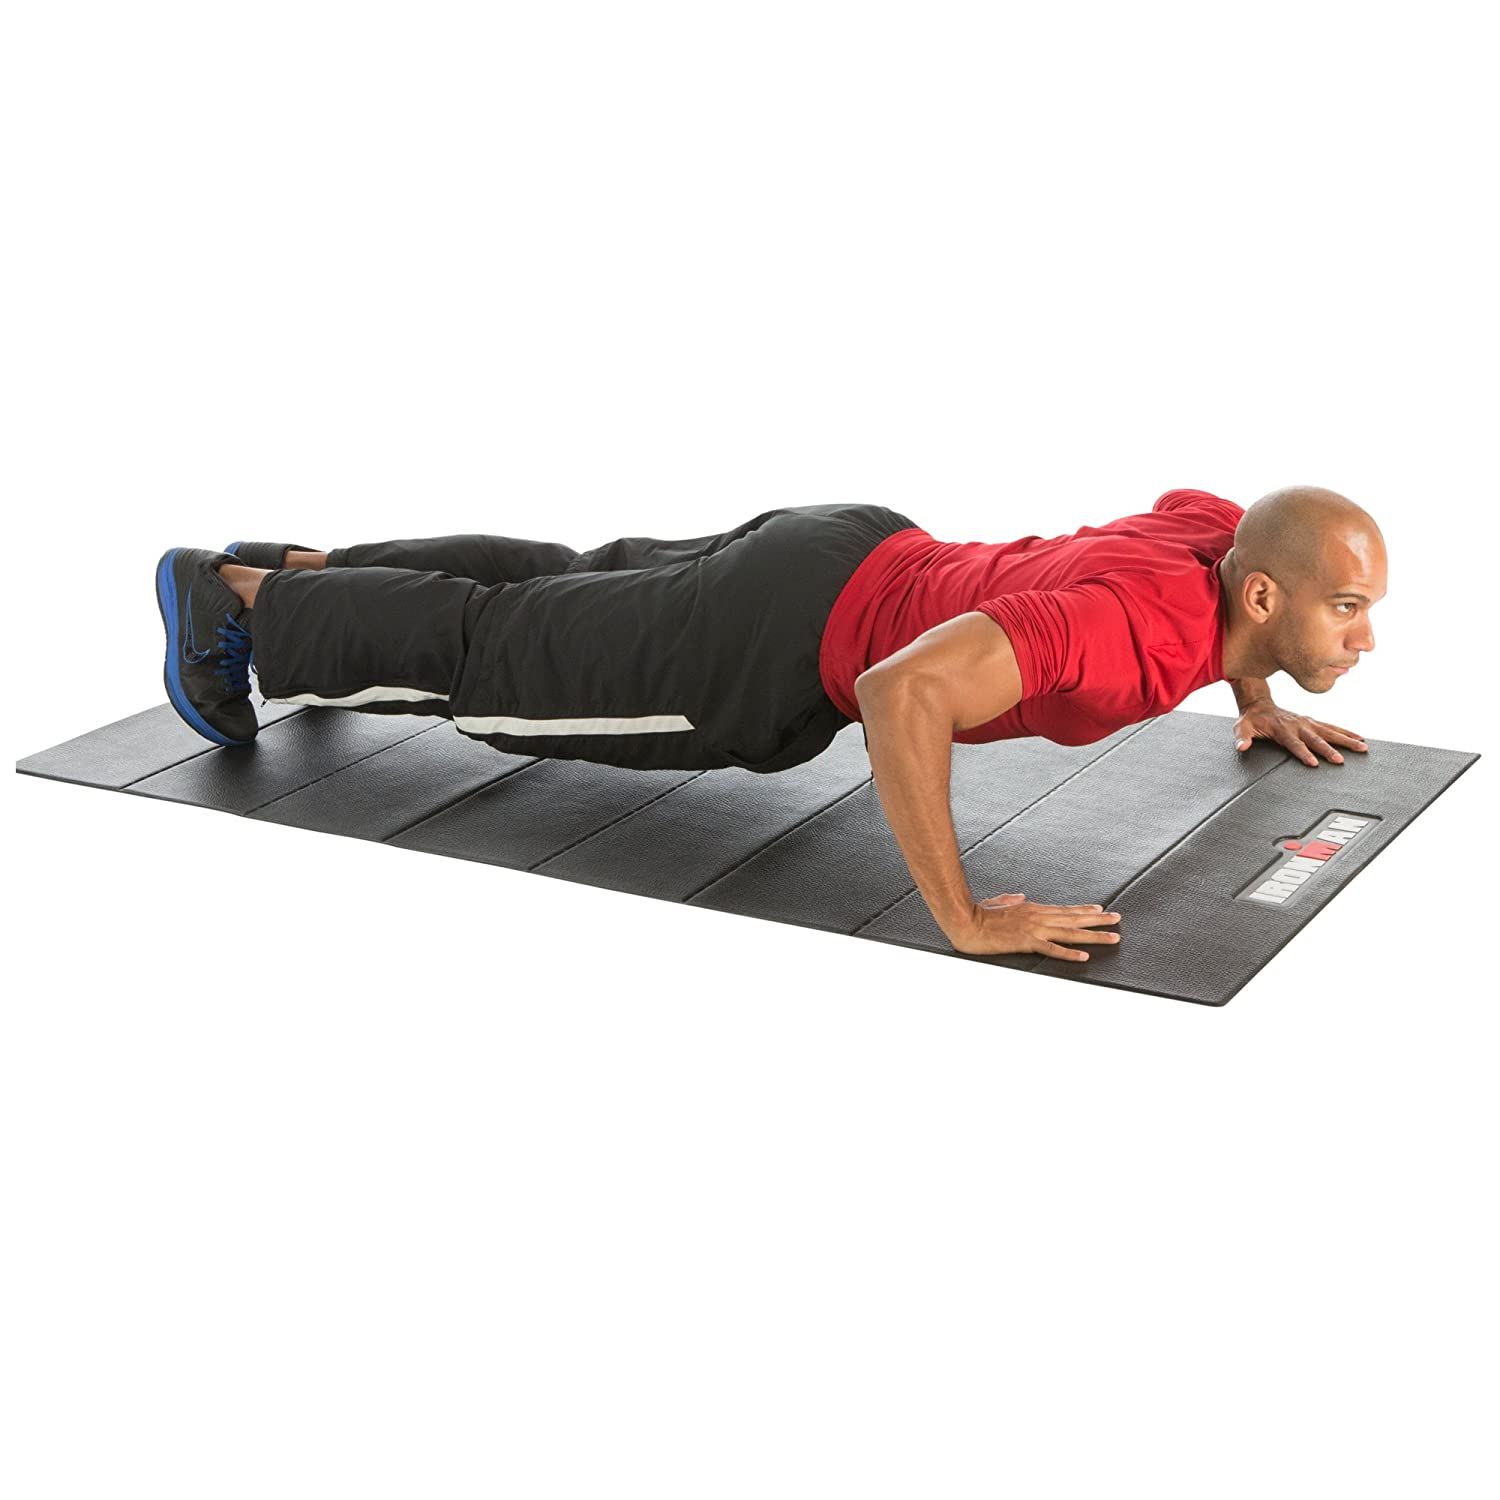 foam exercise mat flexibility cylinders therapy b work muscle mats collections out blue spri mobility